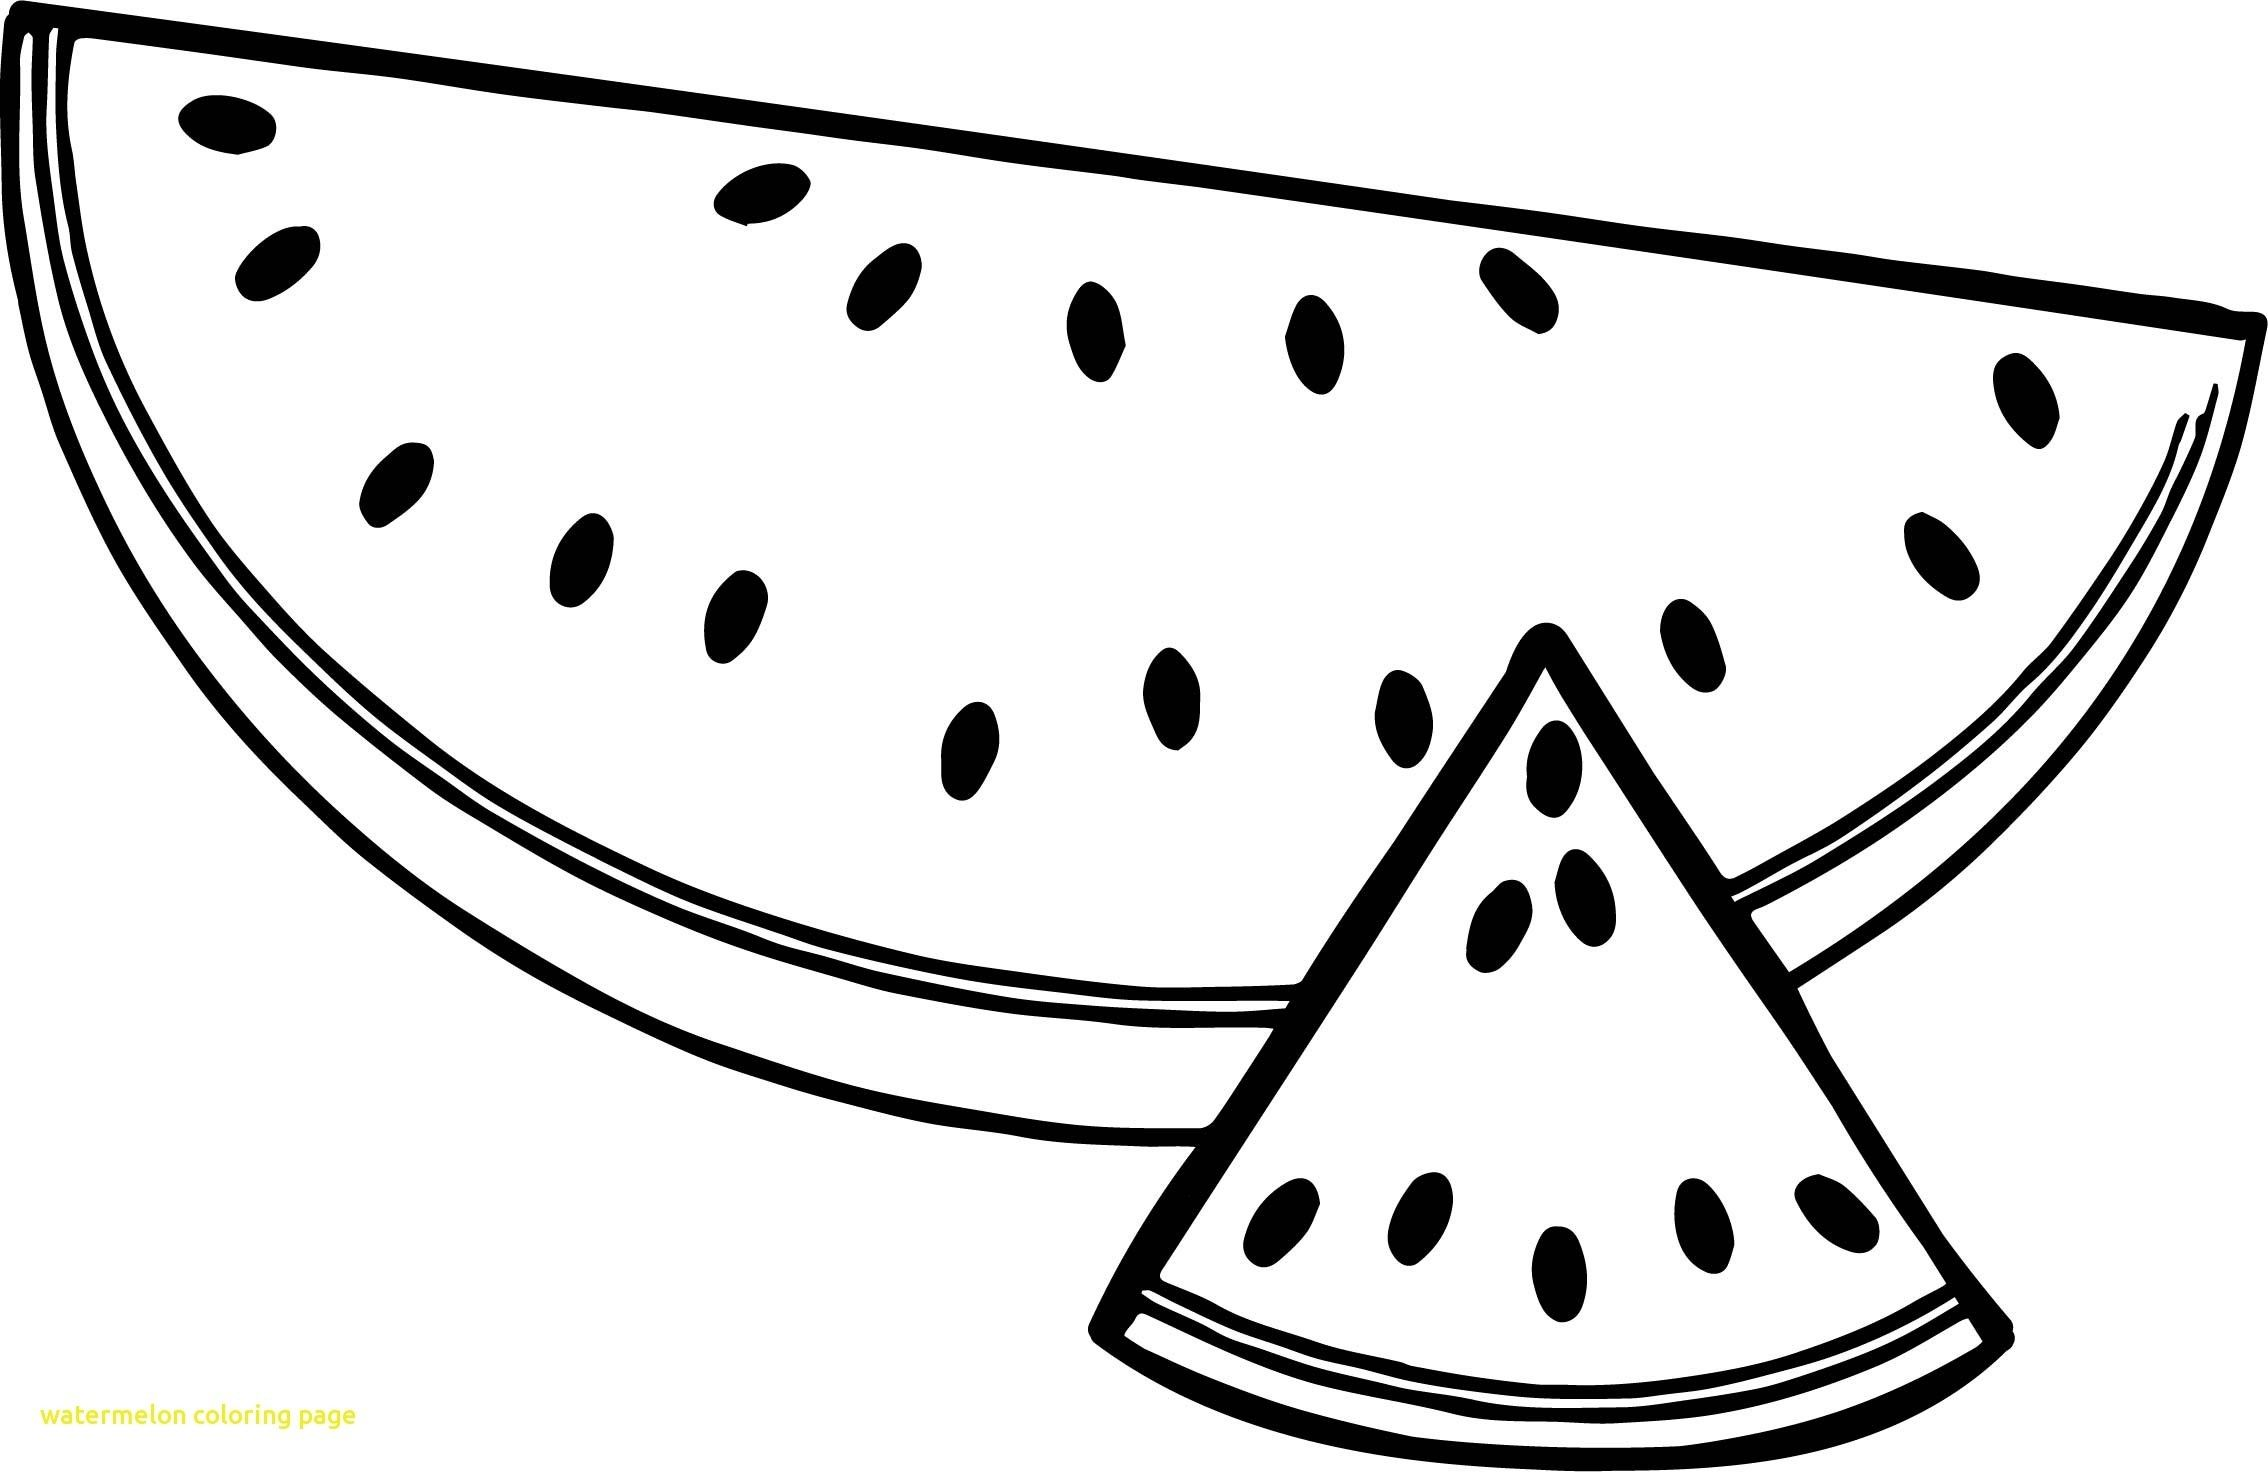 Awesome Watermelons Coloring Pages For Kids Fruits Watermelon Coloring Art Photogra Fruit Coloring Pages Coloring Pages For Kids Printable Coloring Pages